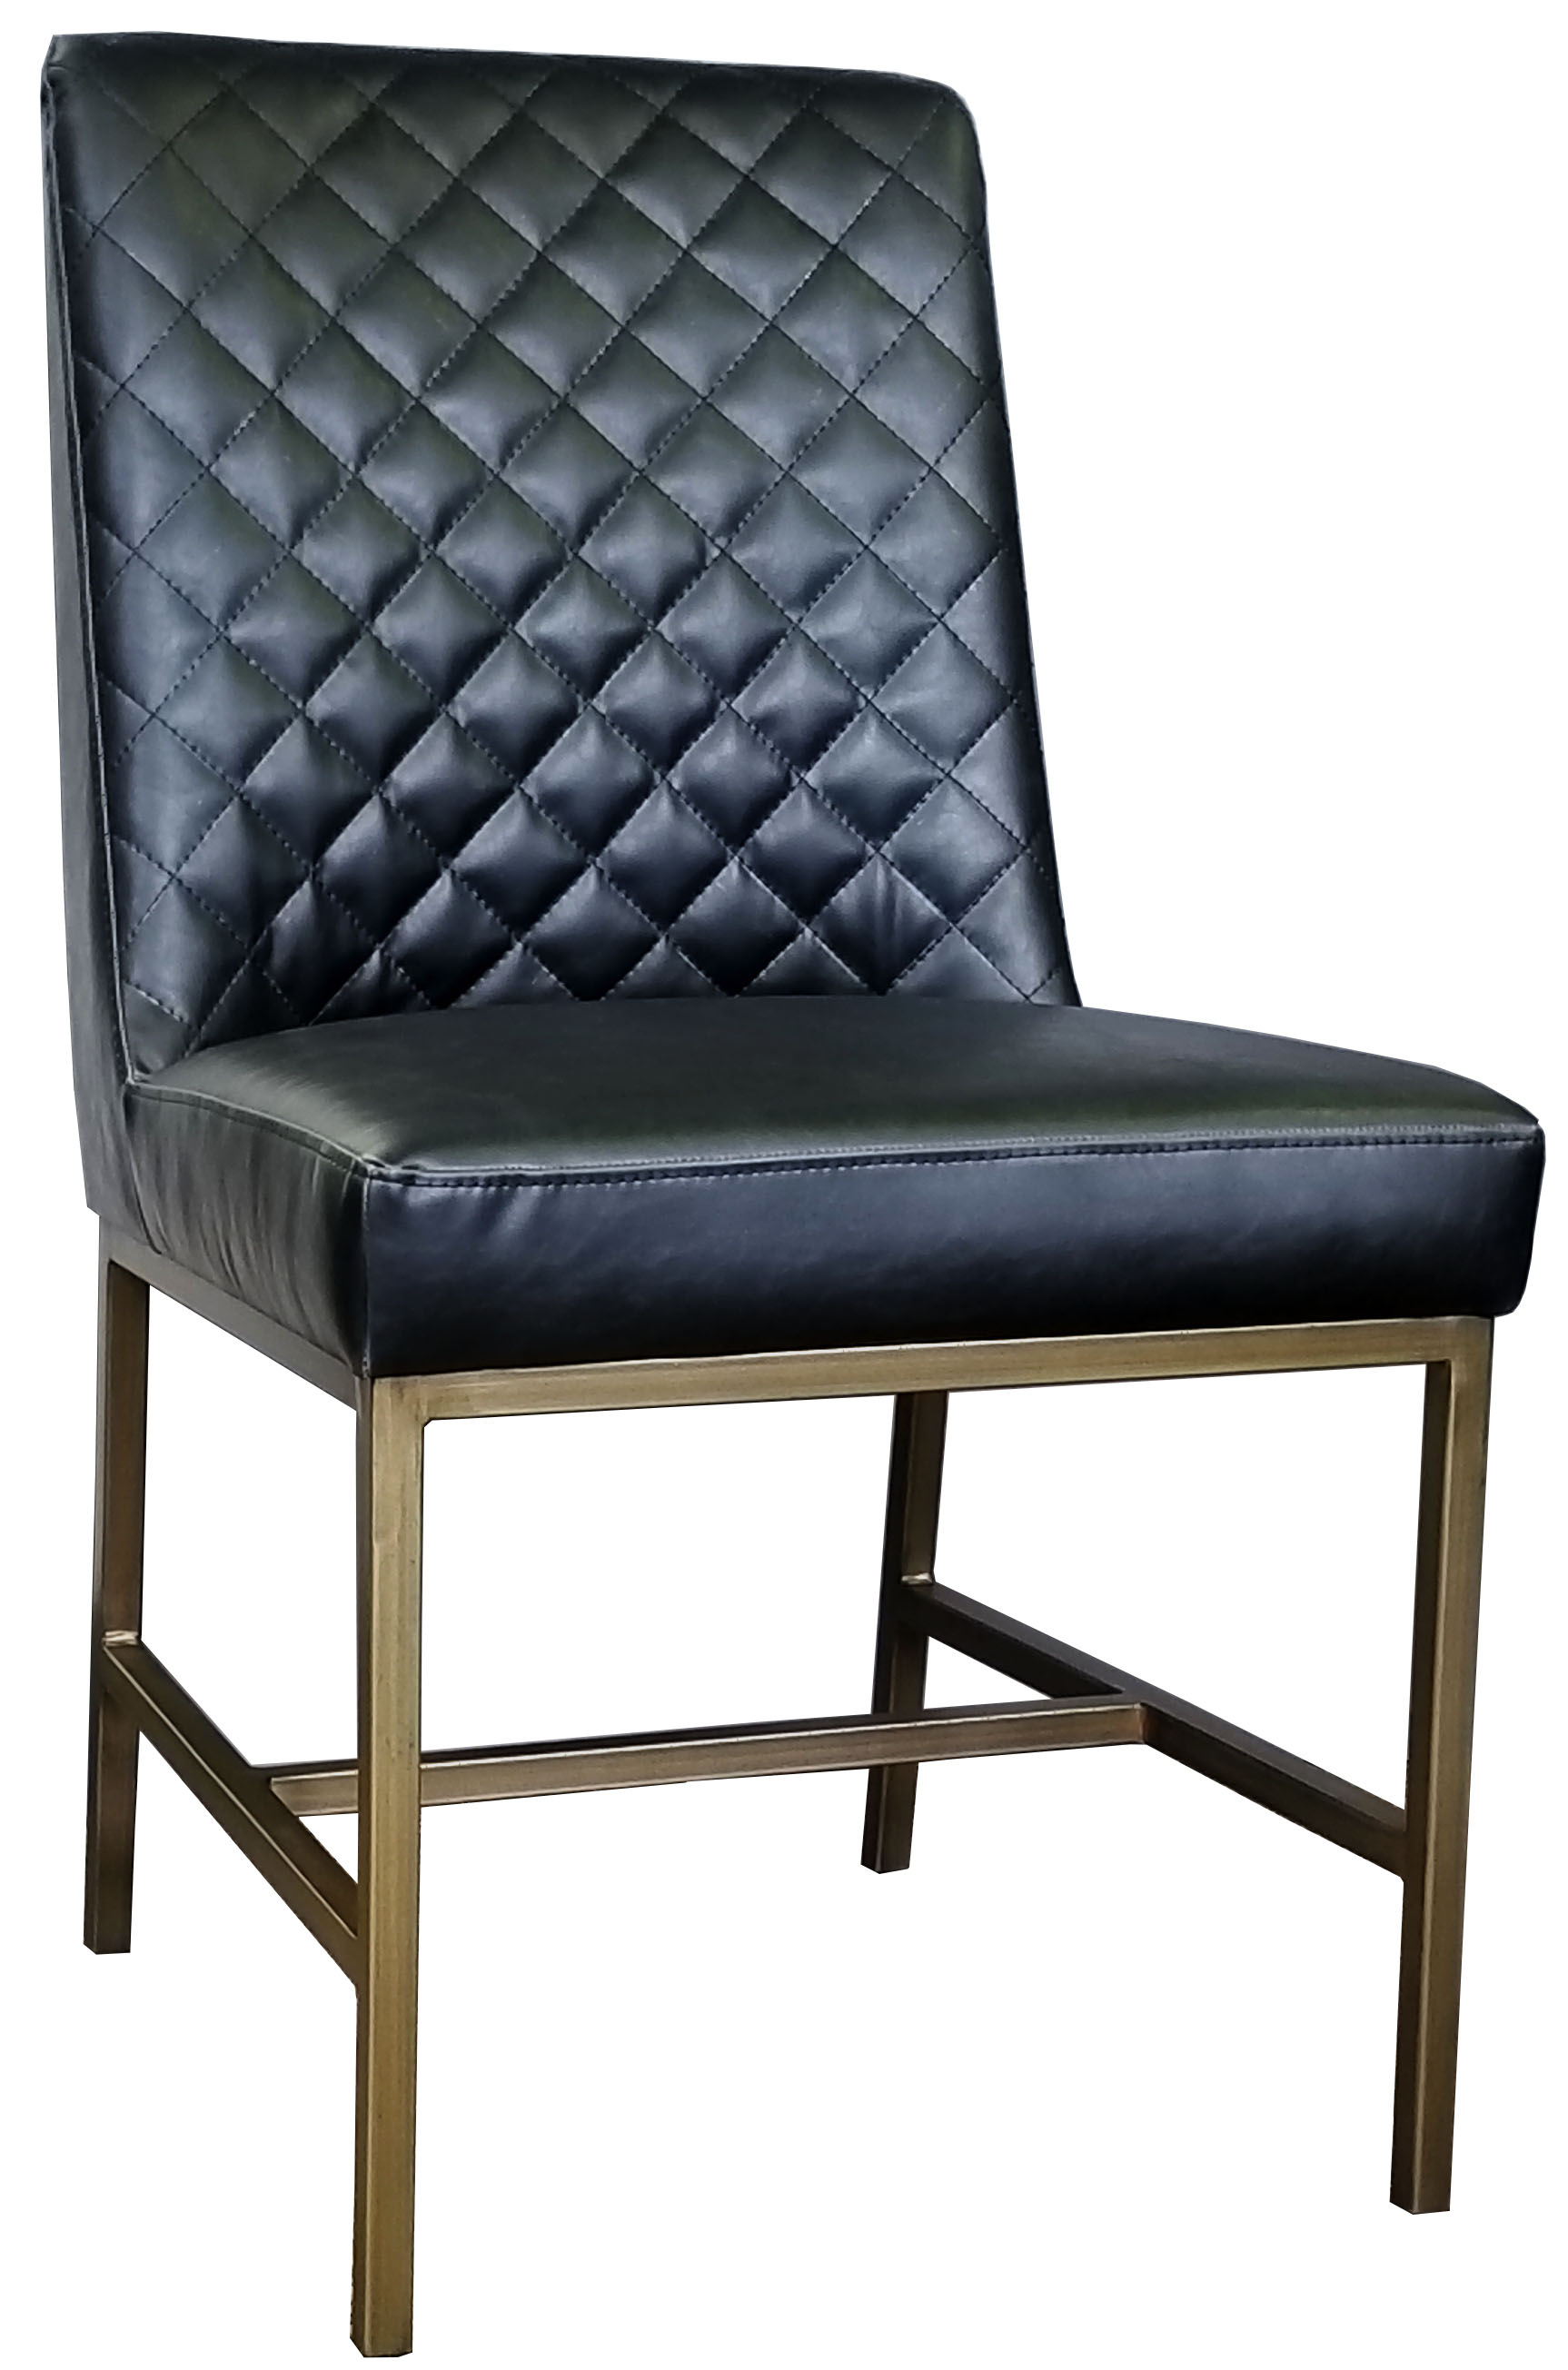 Black Leather Dining Chairs R 1317 Black Leather Dining Chair With Diamond Tufted Back